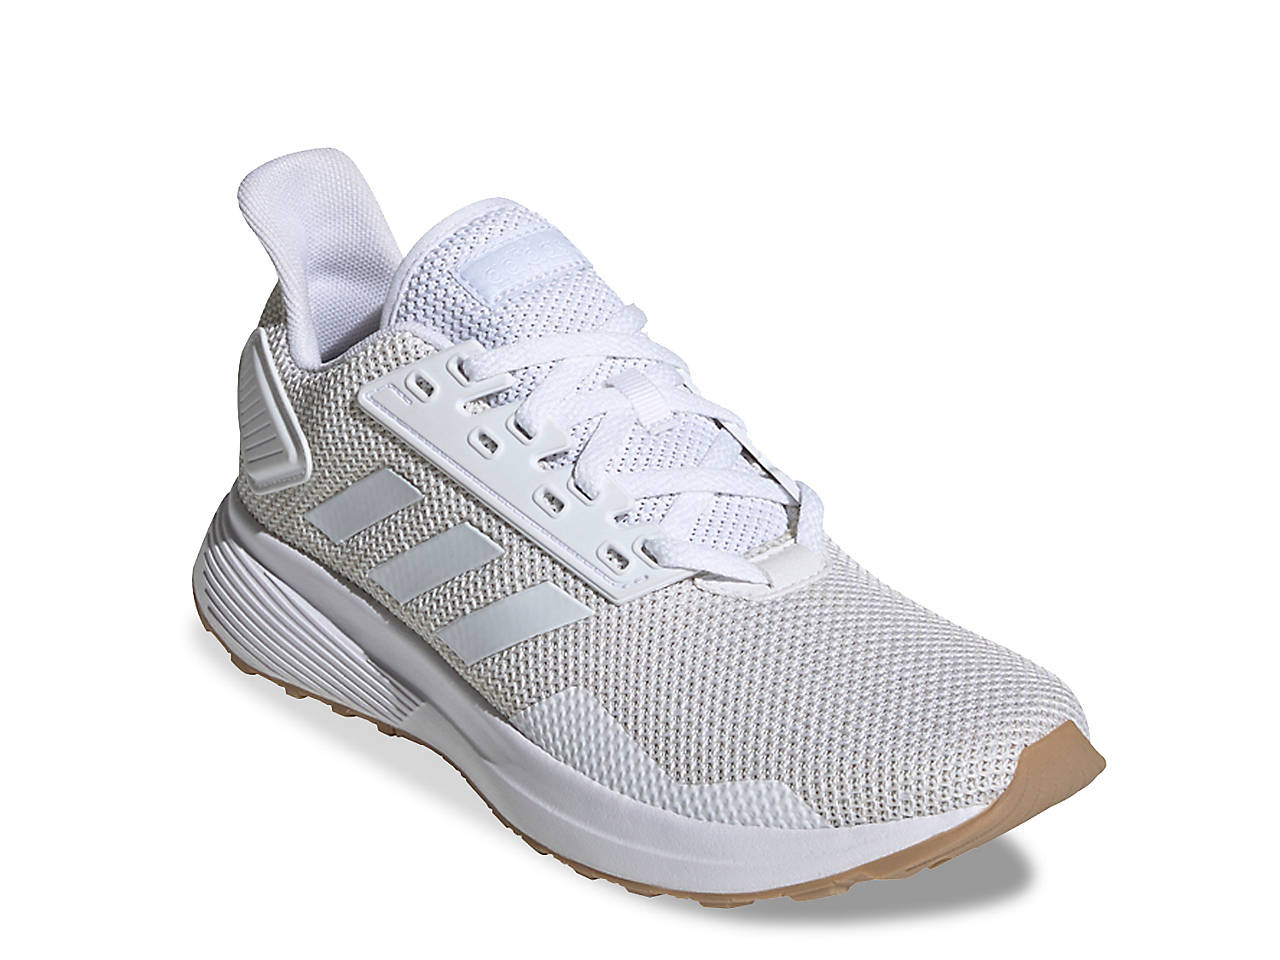 84633fa769a0 adidas Duramo 9 Running Shoe - Women s Women s Shoes